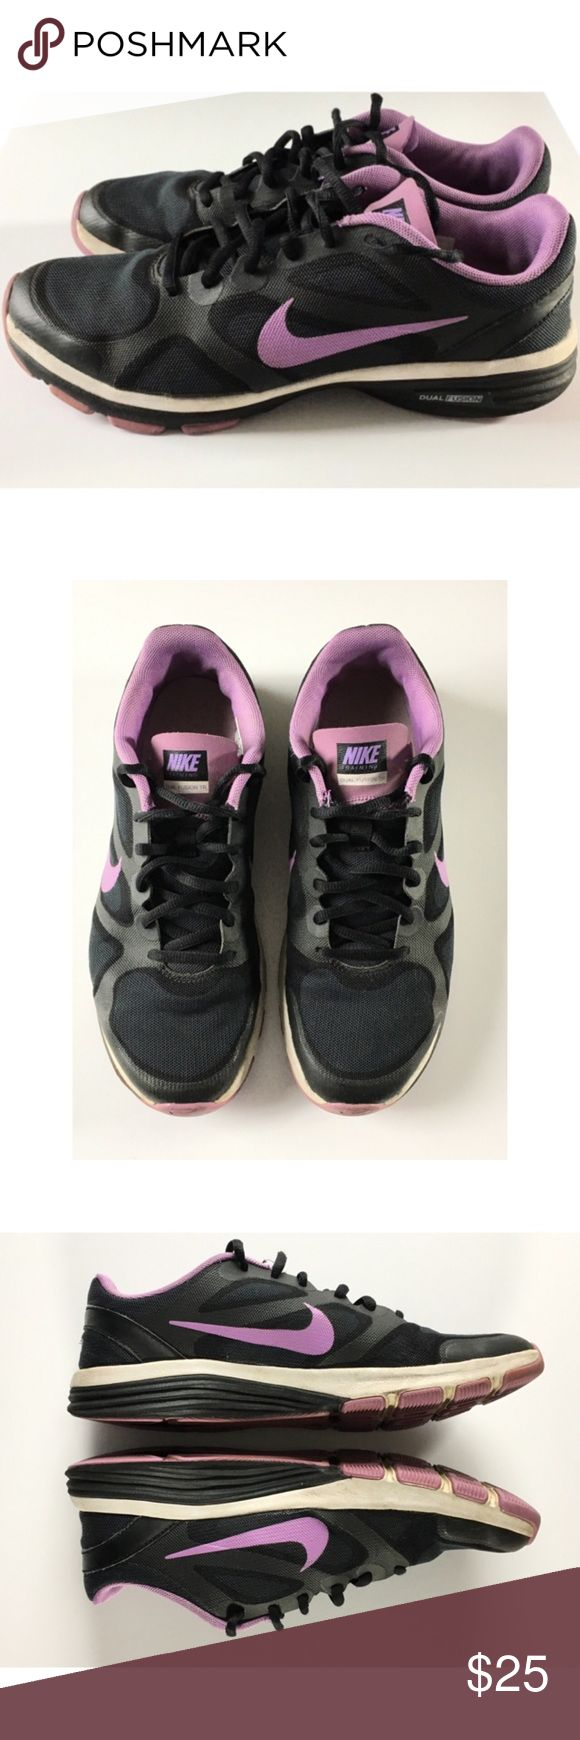 Nike Dual Fusion Training Sneakers Nike Dual Fusion TR 443837-005 sneakers women's size 8.  Gently used. Nike Shoes Athletic Shoes